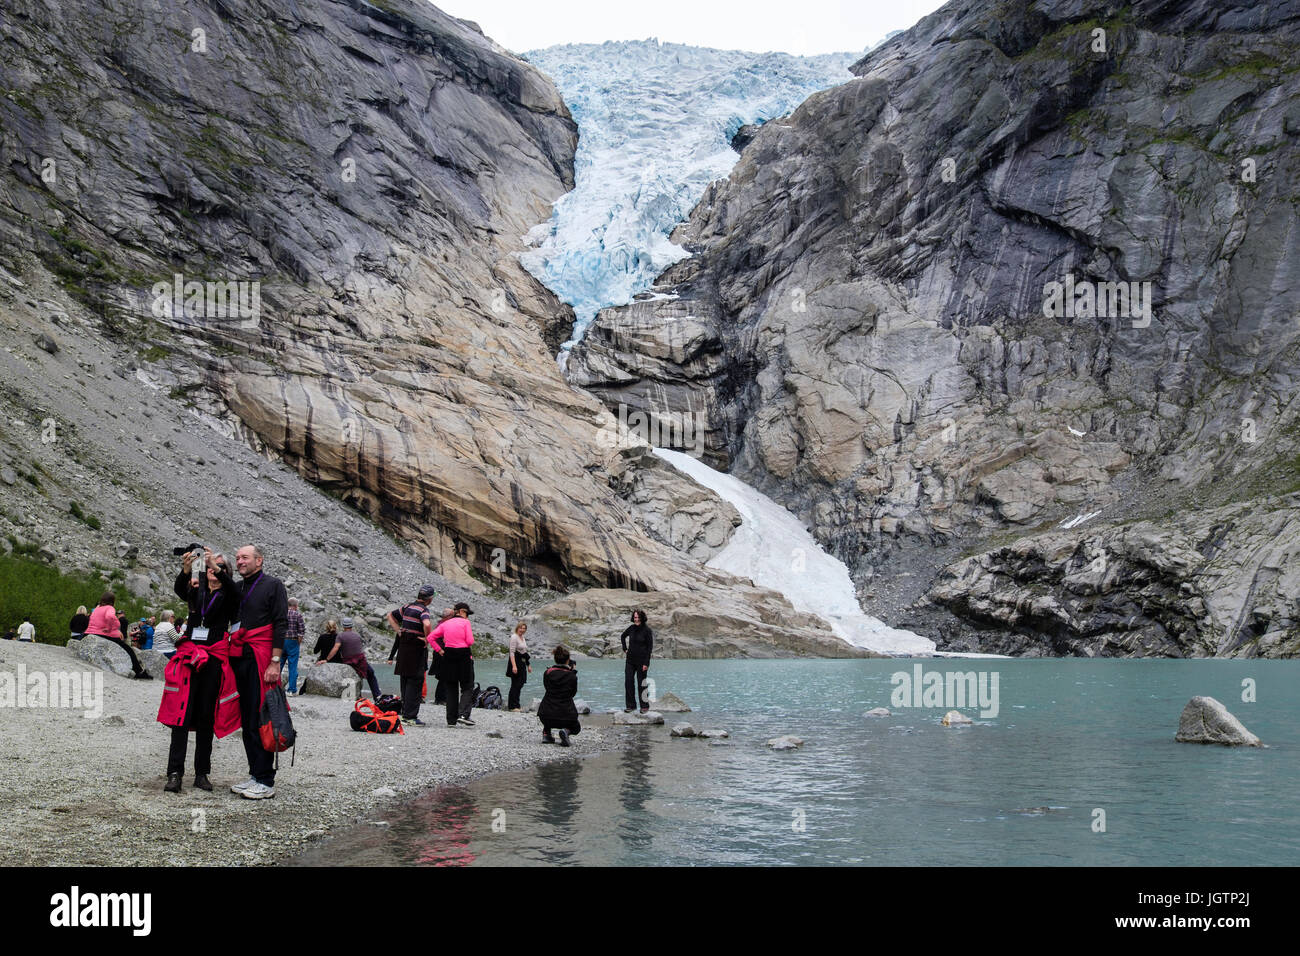 Tourists visiting Briksdalsbreen or Briksdal glacier arm of Jostedalsbreen above Briksdalsbrevatnet lake in Jostedalsbreen National Park, Norway Stock Photo